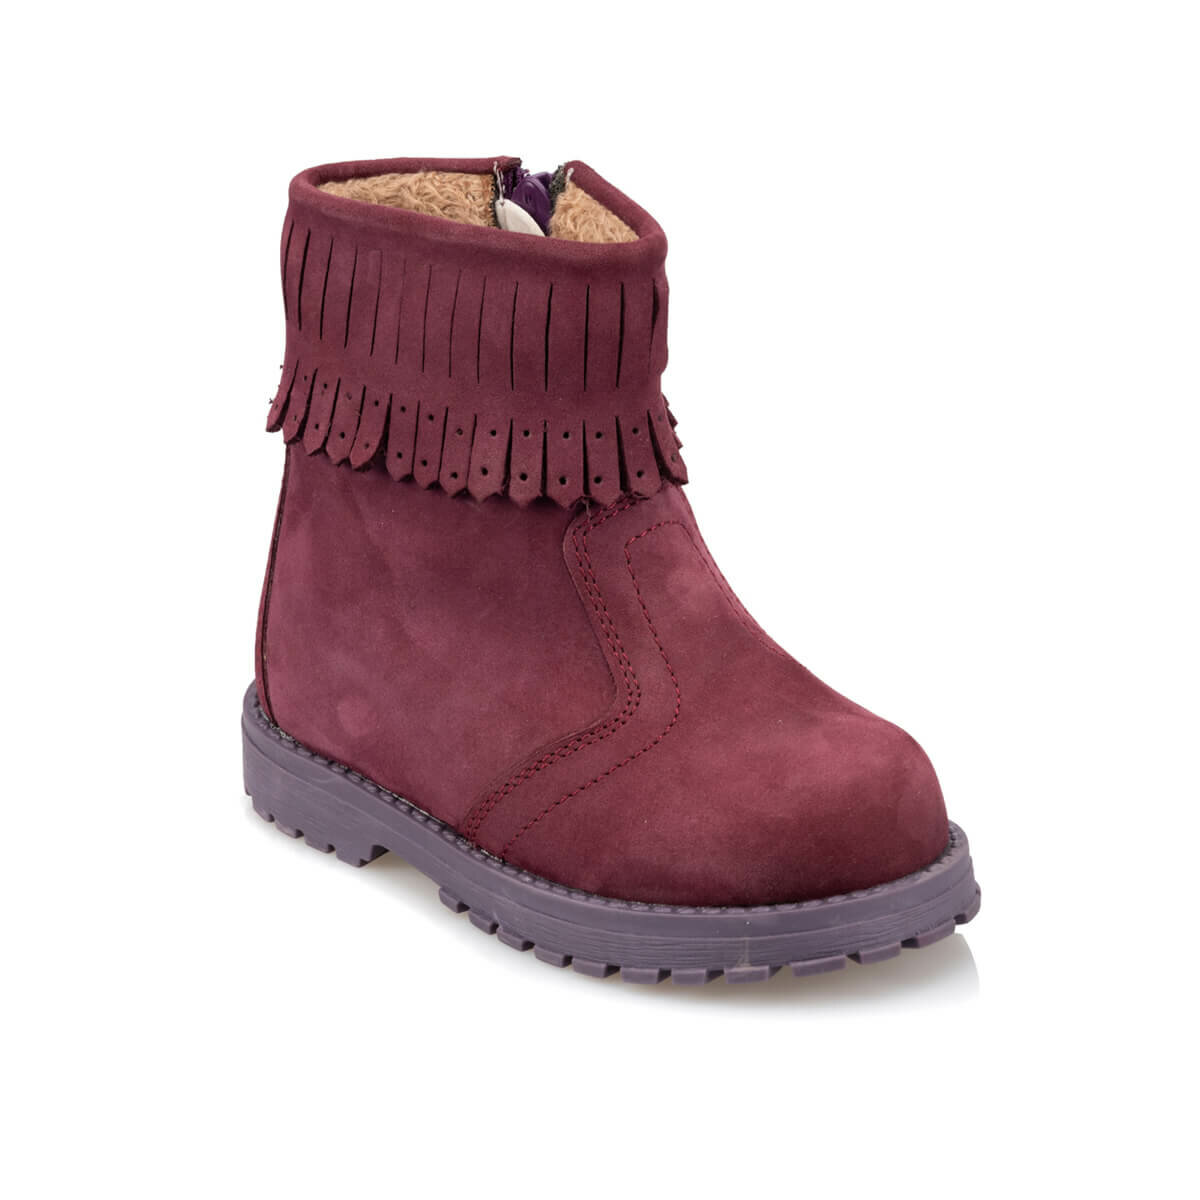 FLO 92.510776.B Purple Female Child Boots Polaris